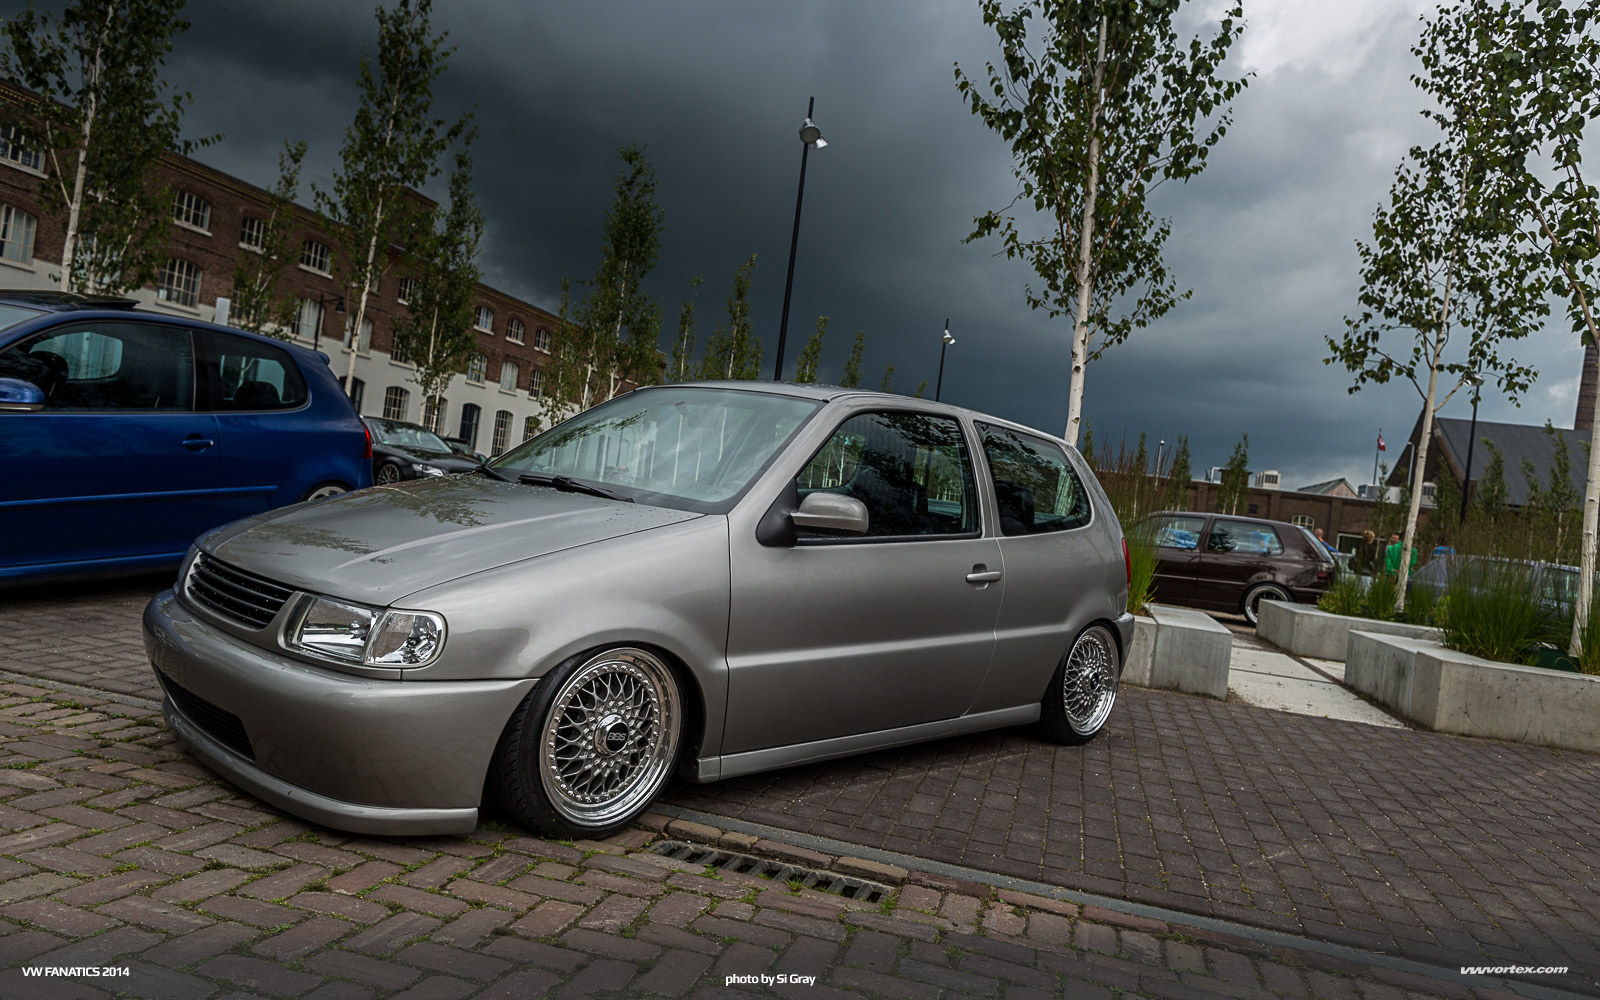 VWFanatics-2014-Si-Gray-483